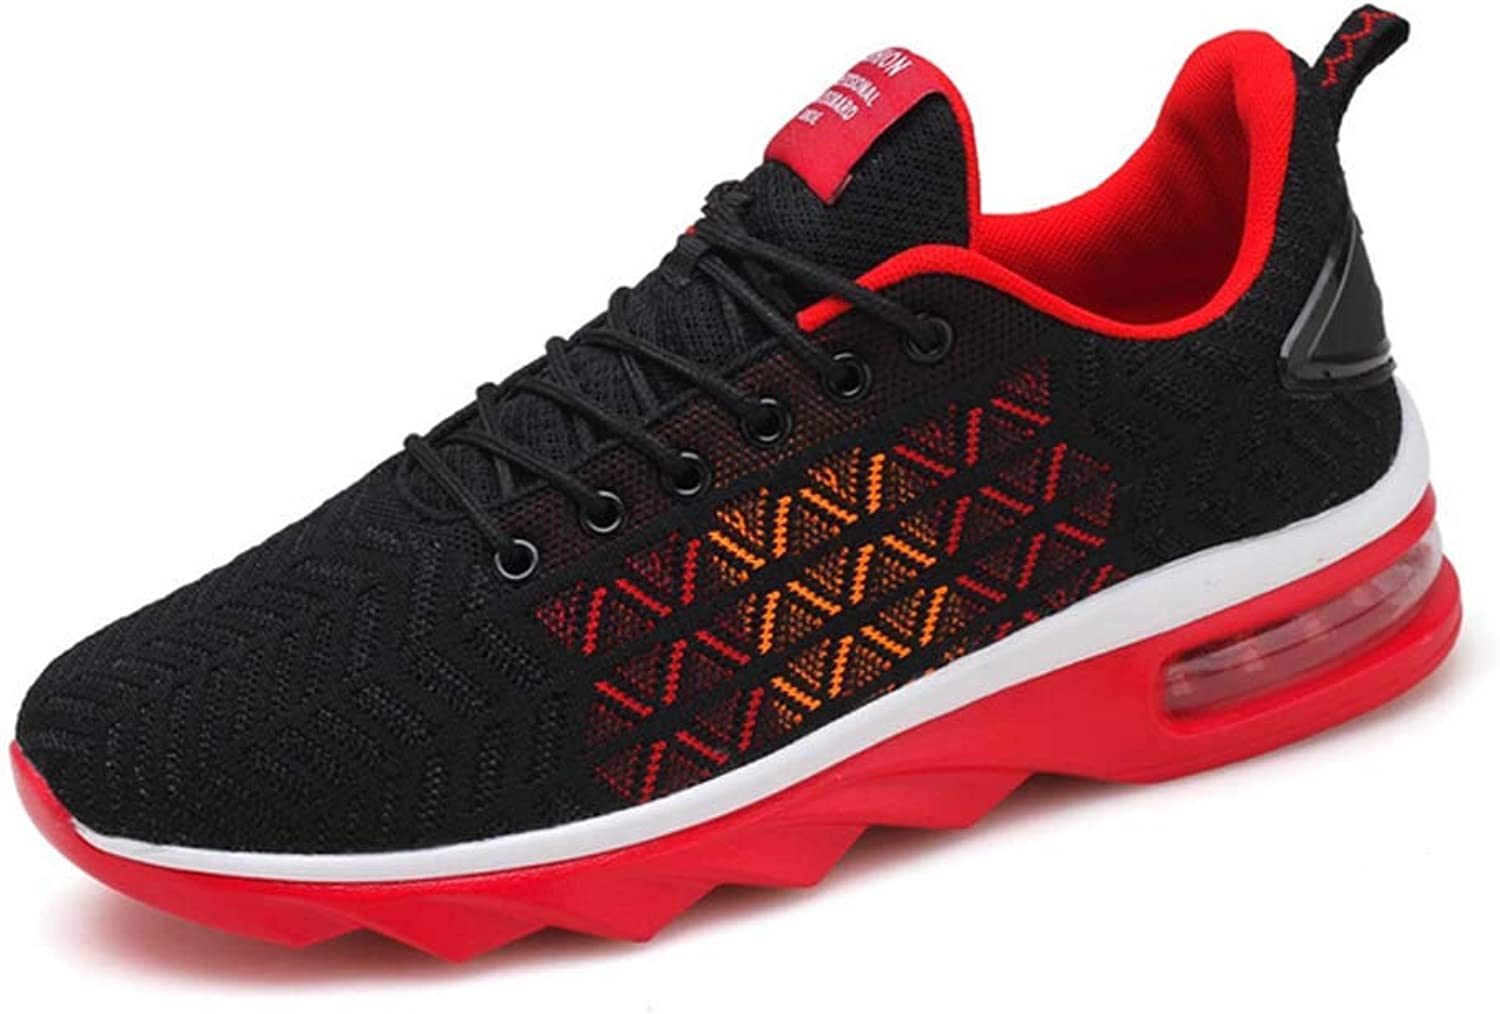 GLSHI Men Lightweight Sports shoes 2018 Autumn New Air Cushion Breathable Knitted Outdoor Casual shoes